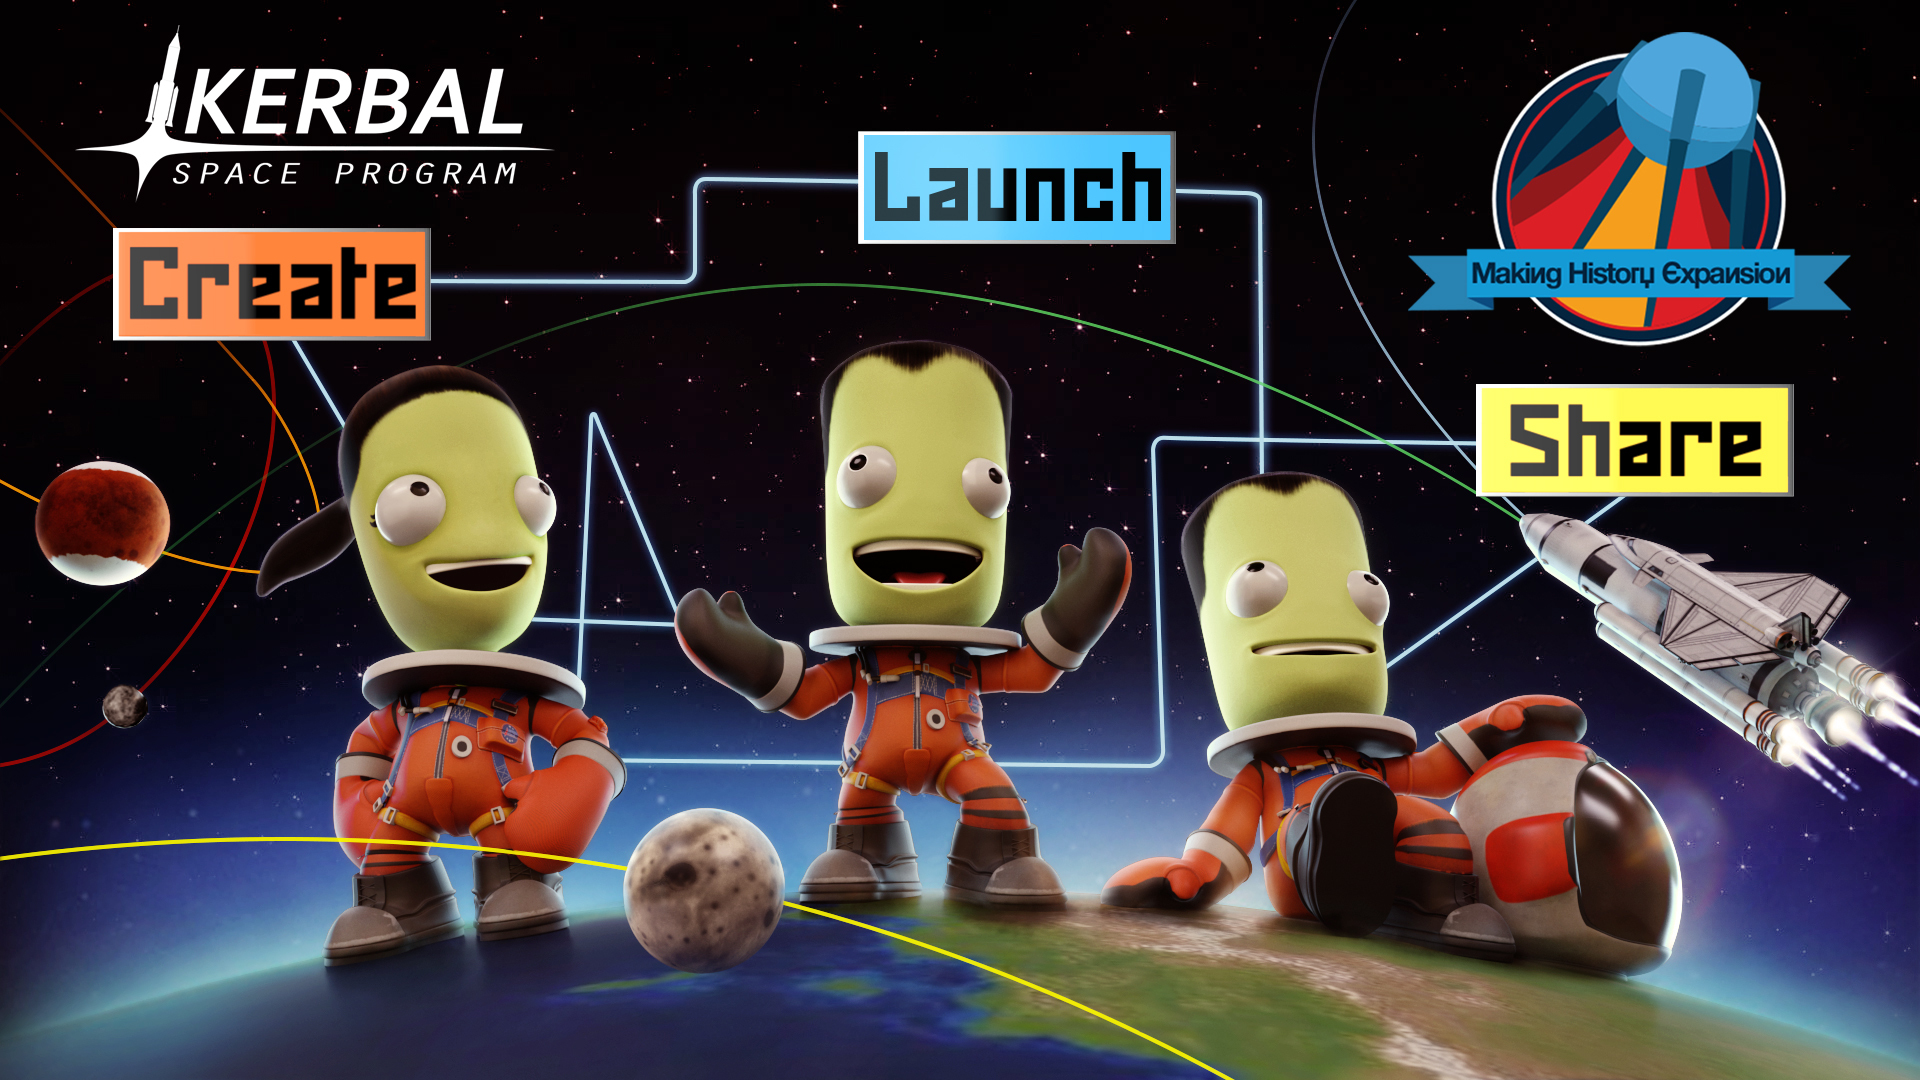 News - Kerbal Space Program: Making History Expansion Release Date